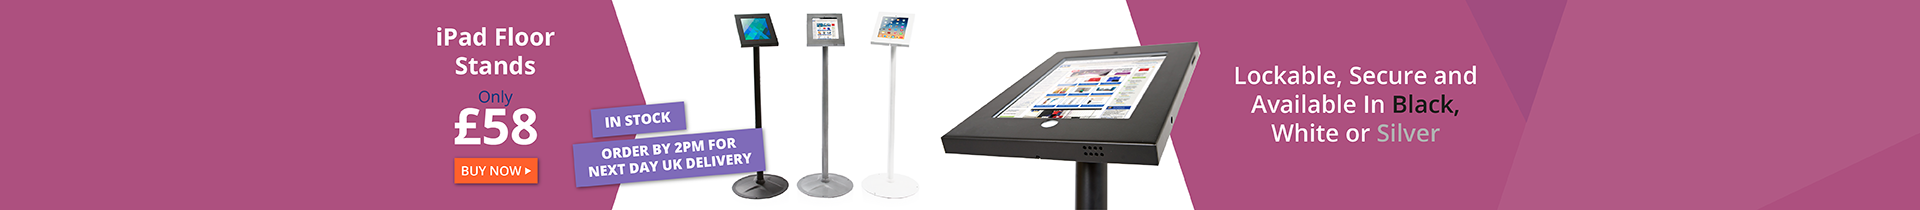 iPad-Floor-Stands